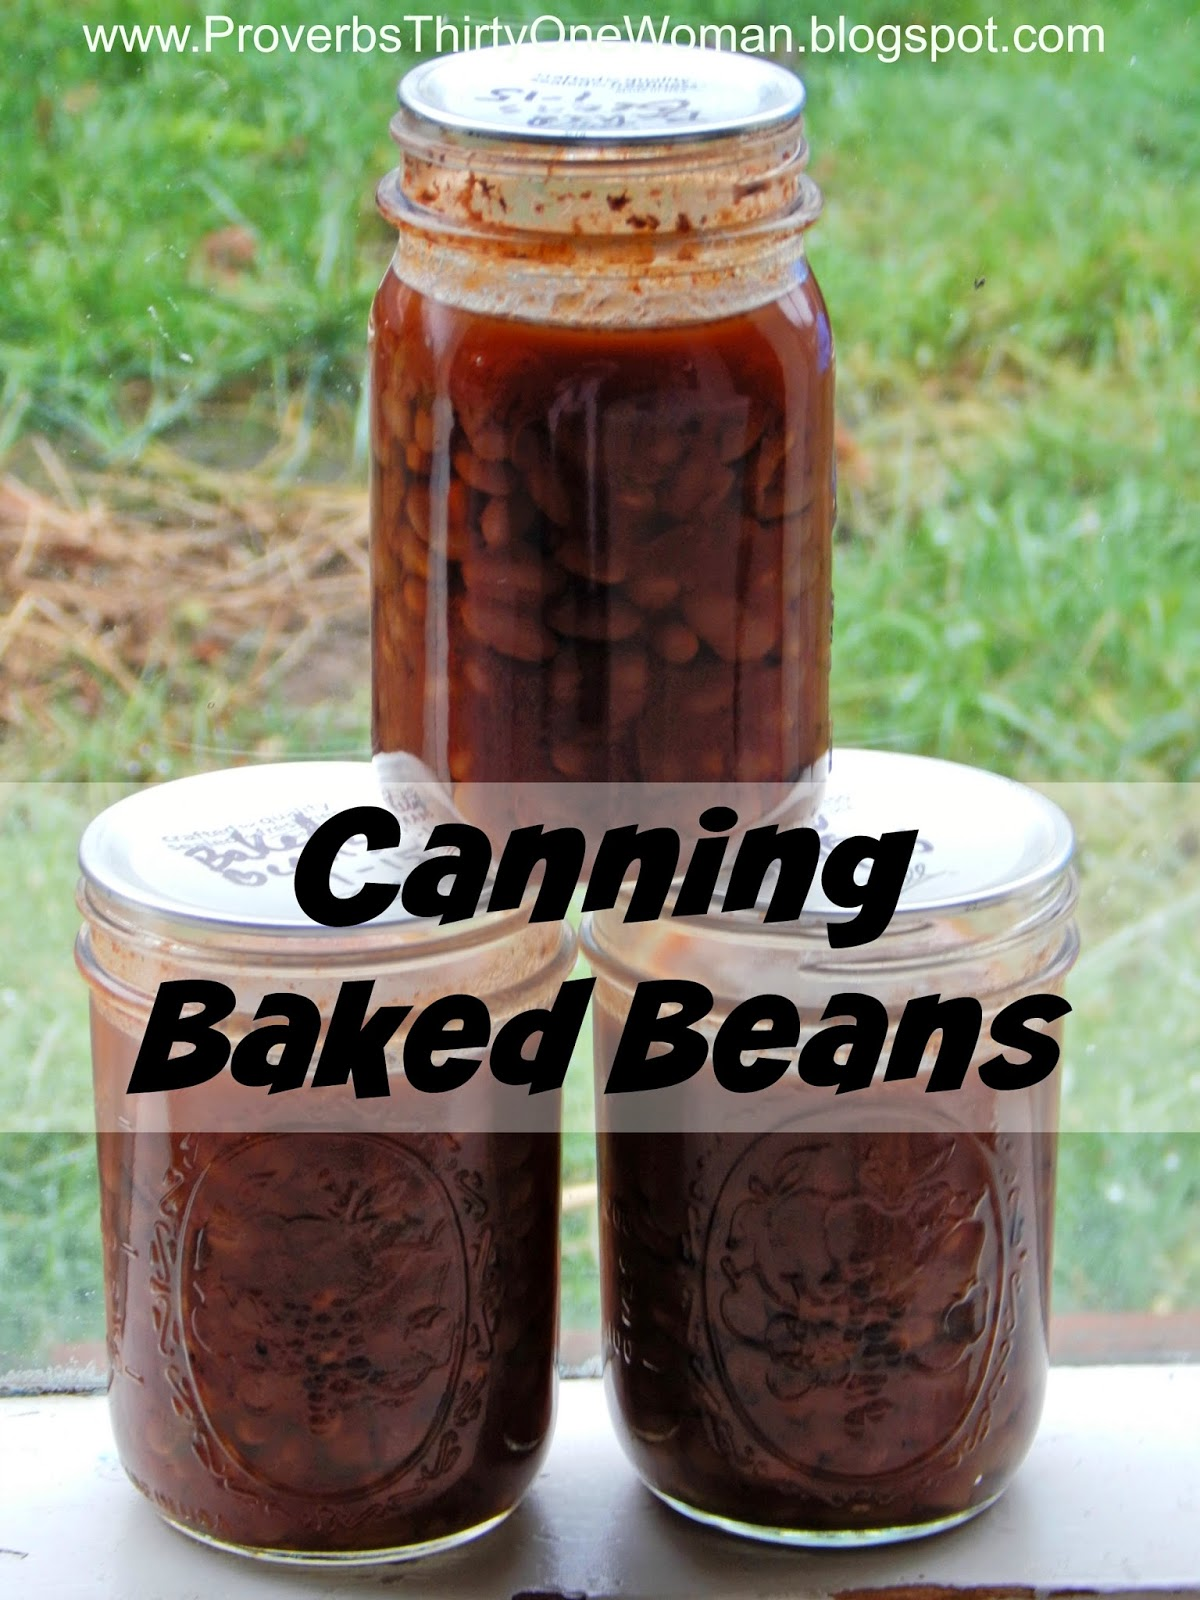 ... food at home. Another is better quality - and this baked beans recipe